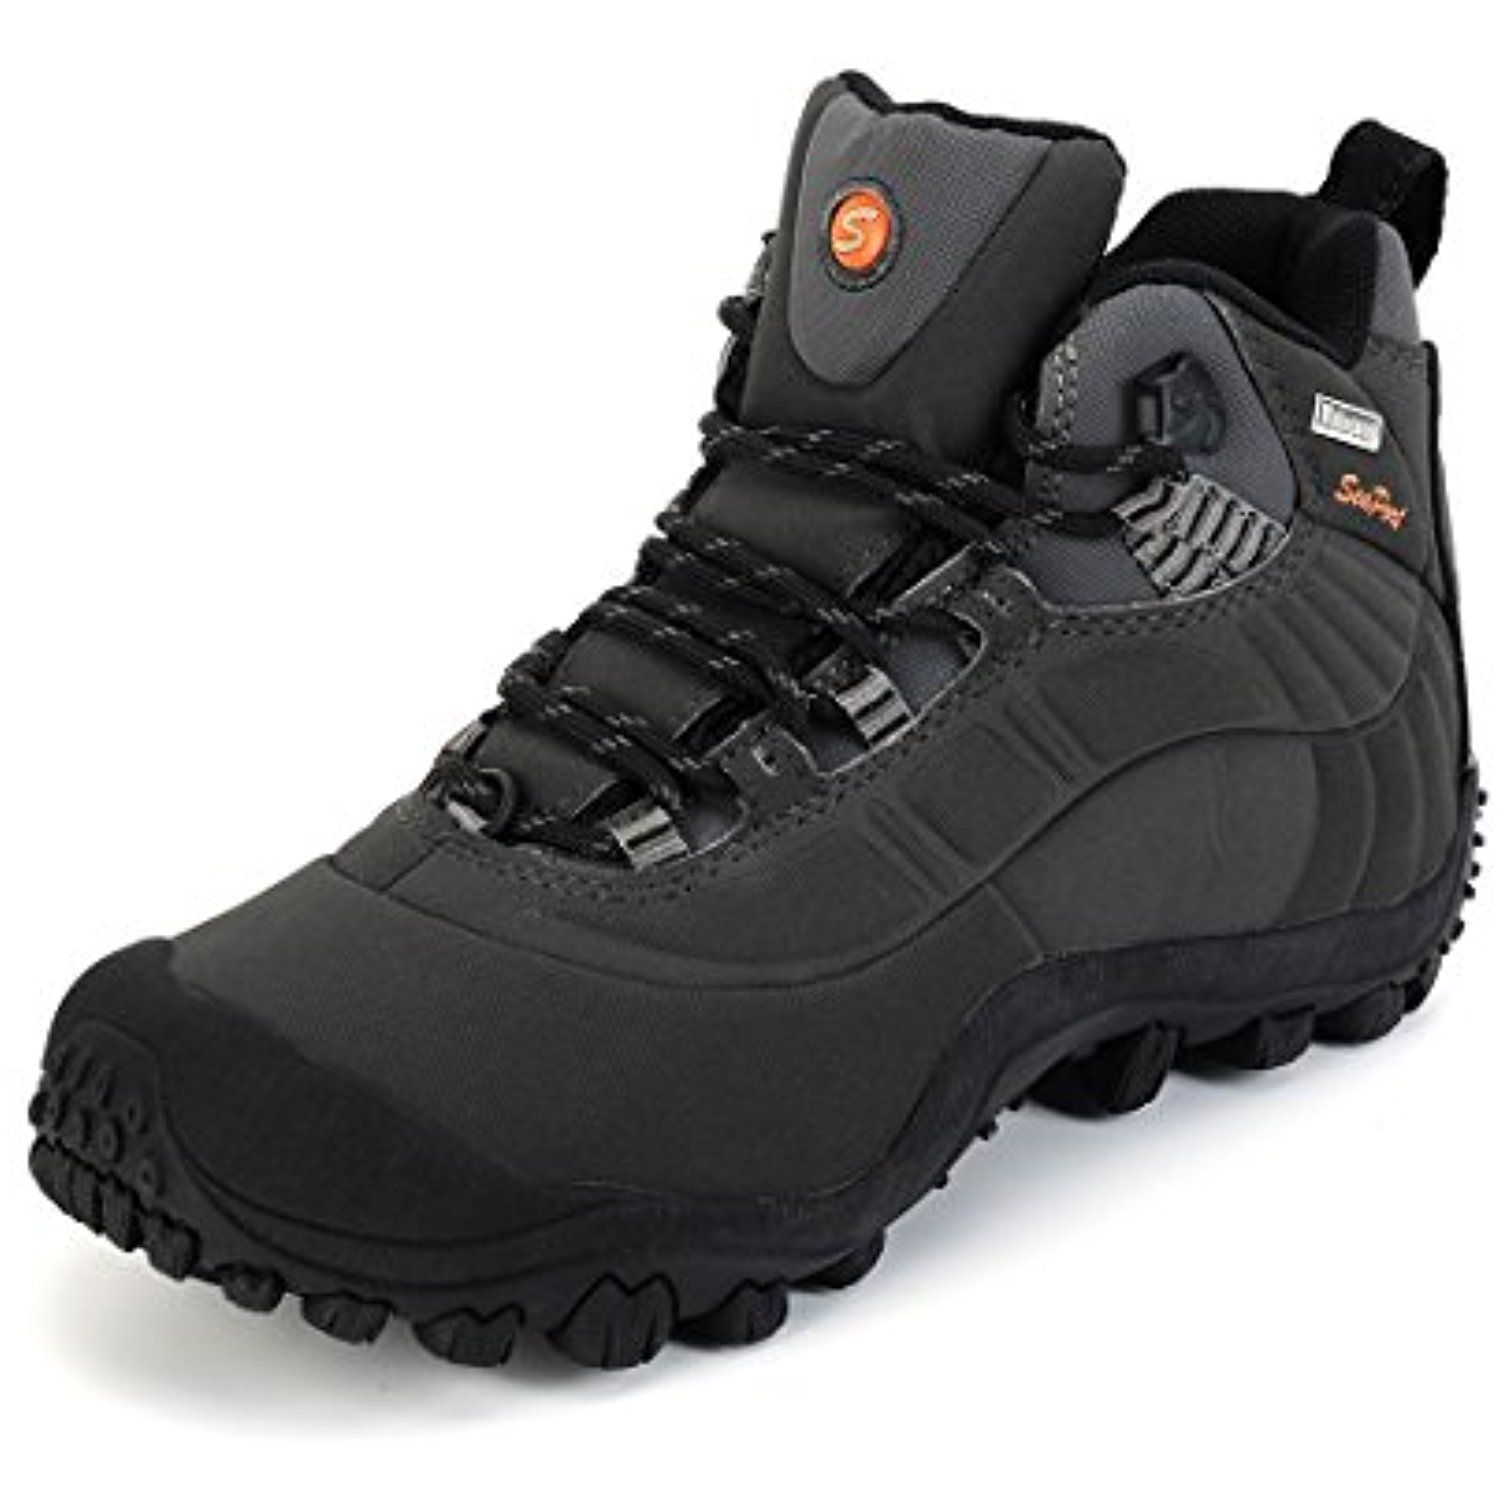 Women's Seaport Waterproof Light-Weight Hiking Boots